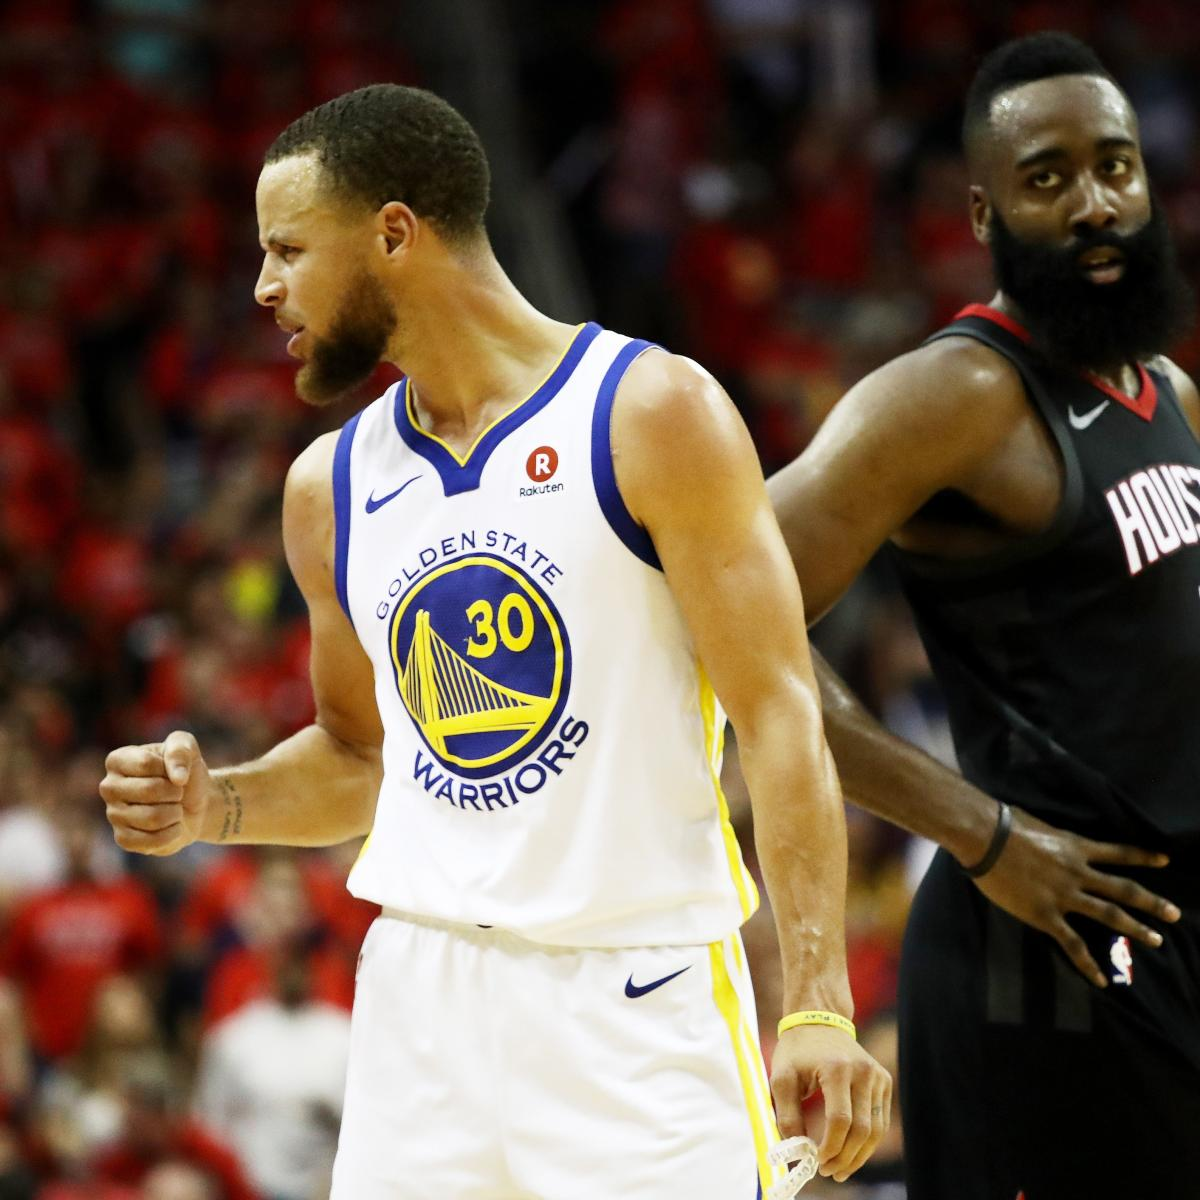 Nba2k19 James Harden: James Harden, Steph Curry Lead NBA To New Single-Season 3